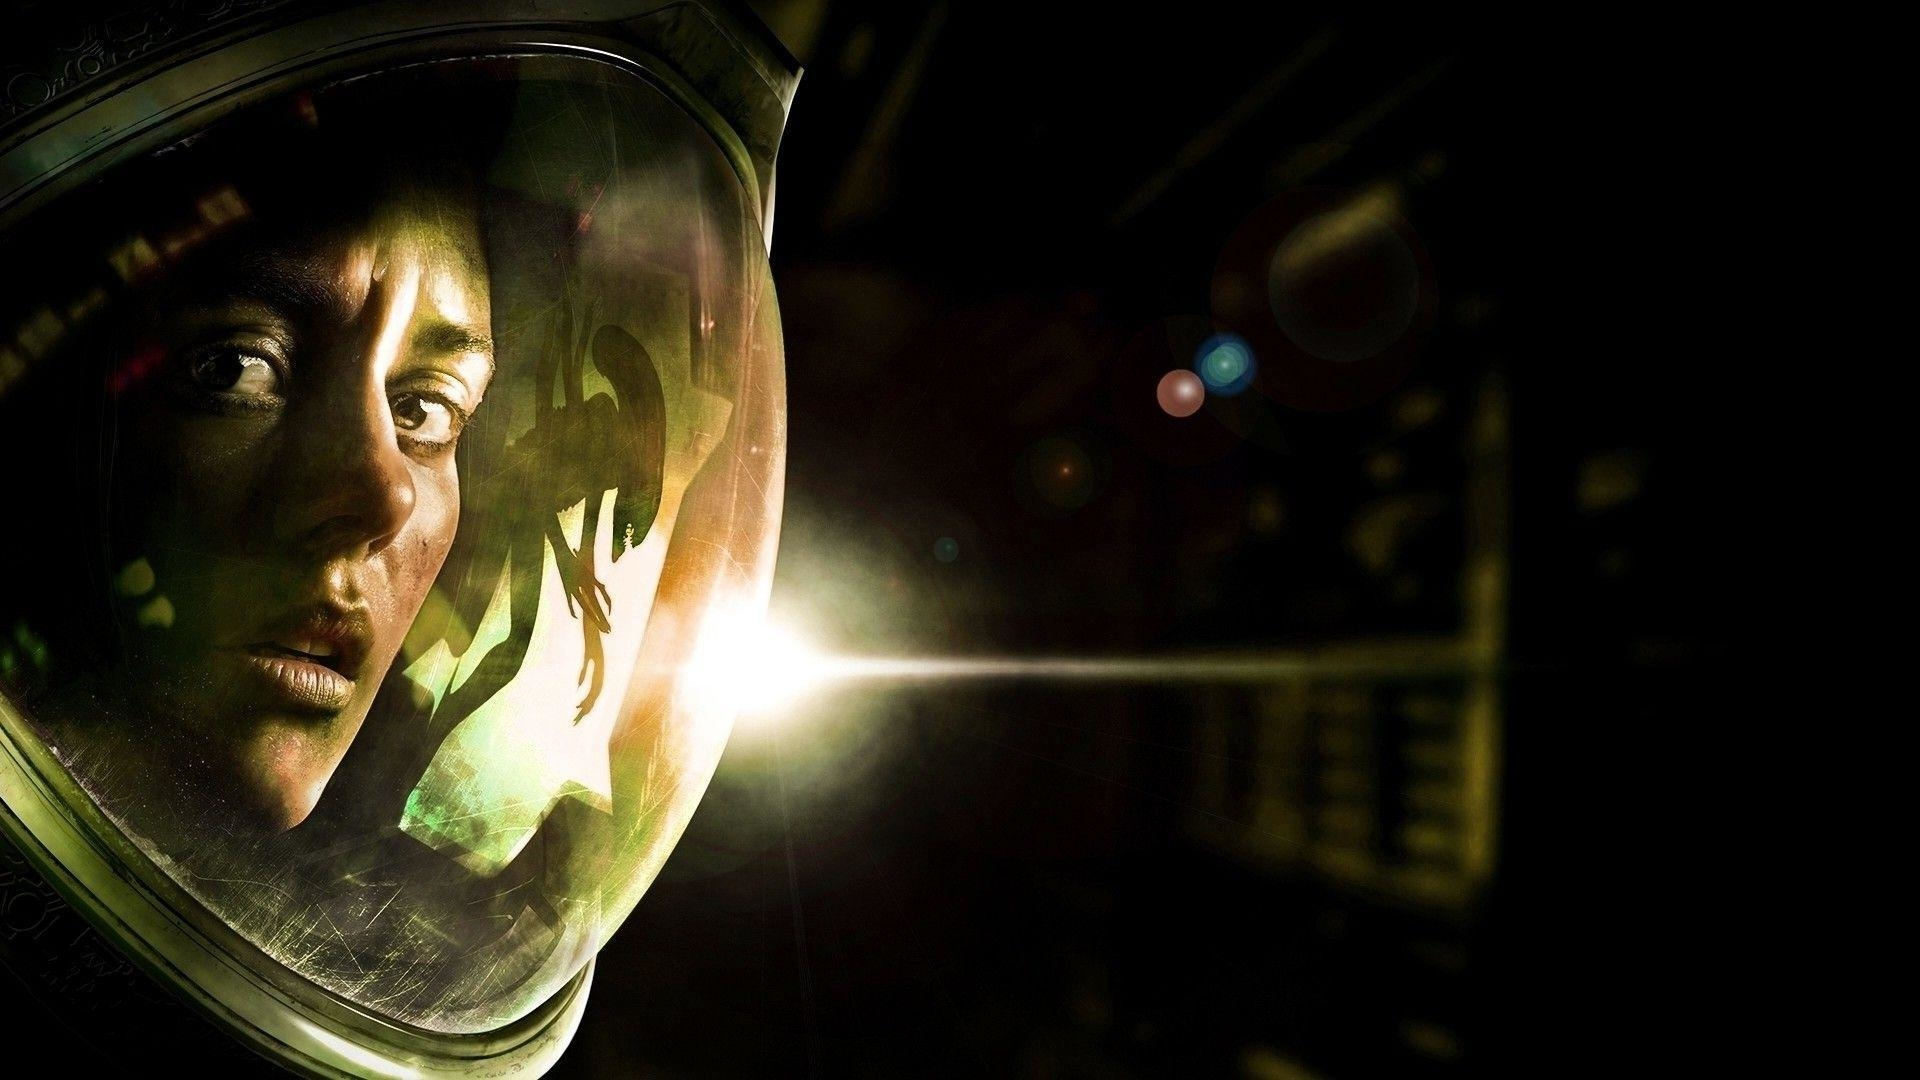 Alien Isolation Wallpaper Hd Games 4k Wallpapers Images